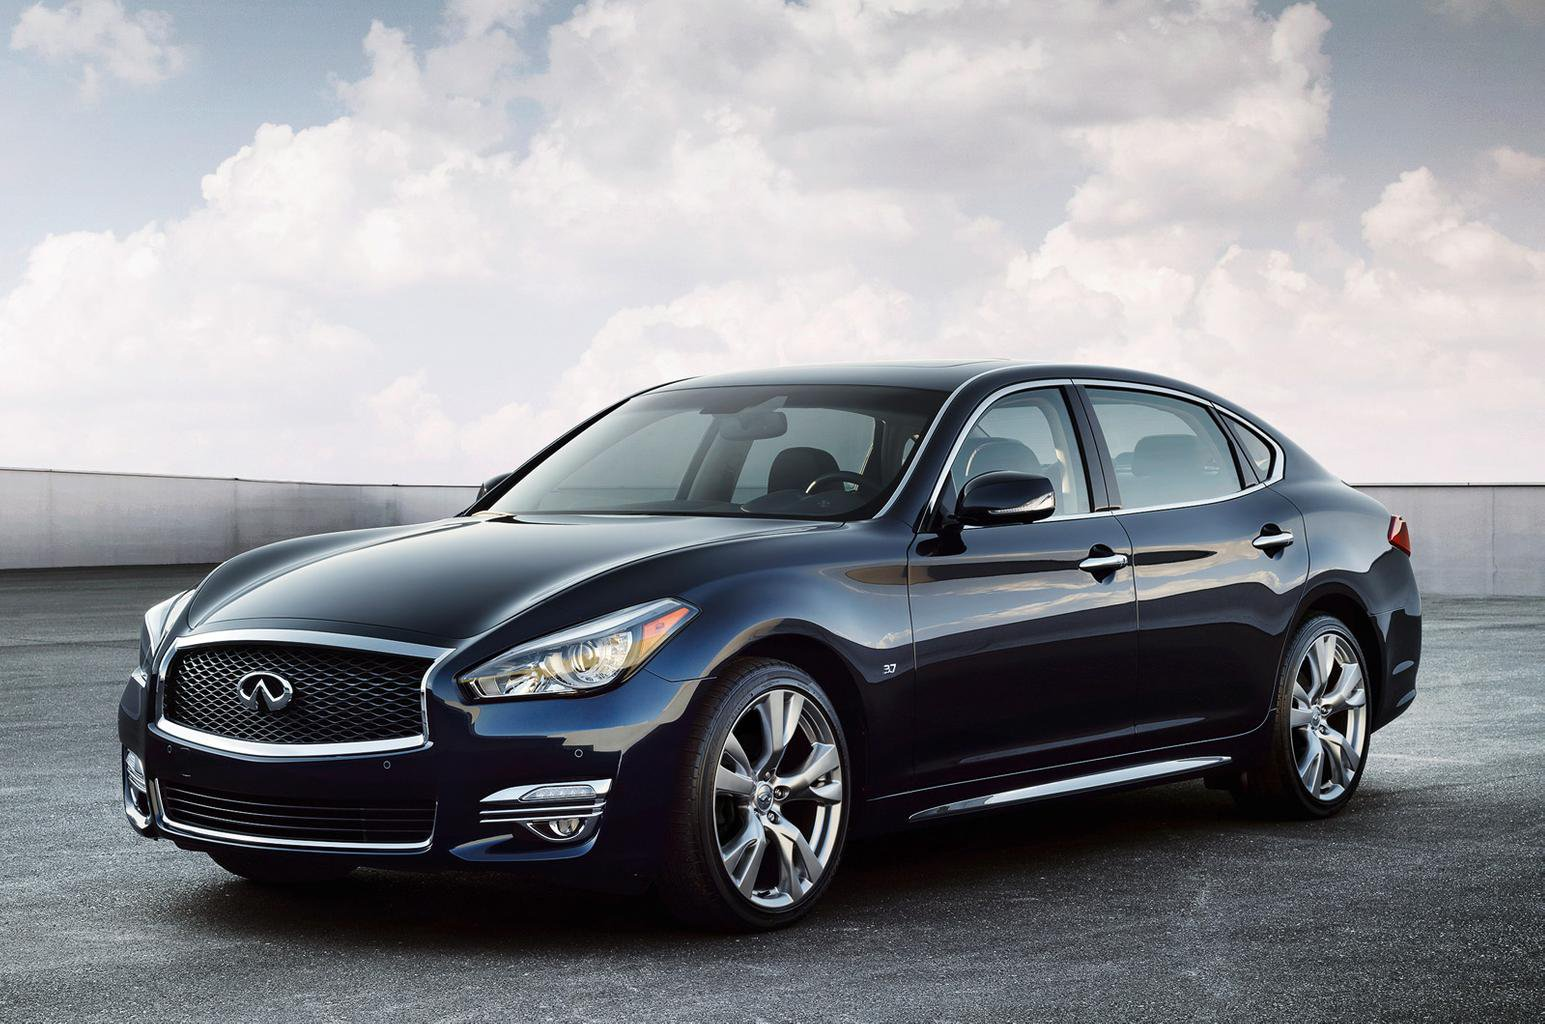 2015 Infiniti Q70 - prices and specification